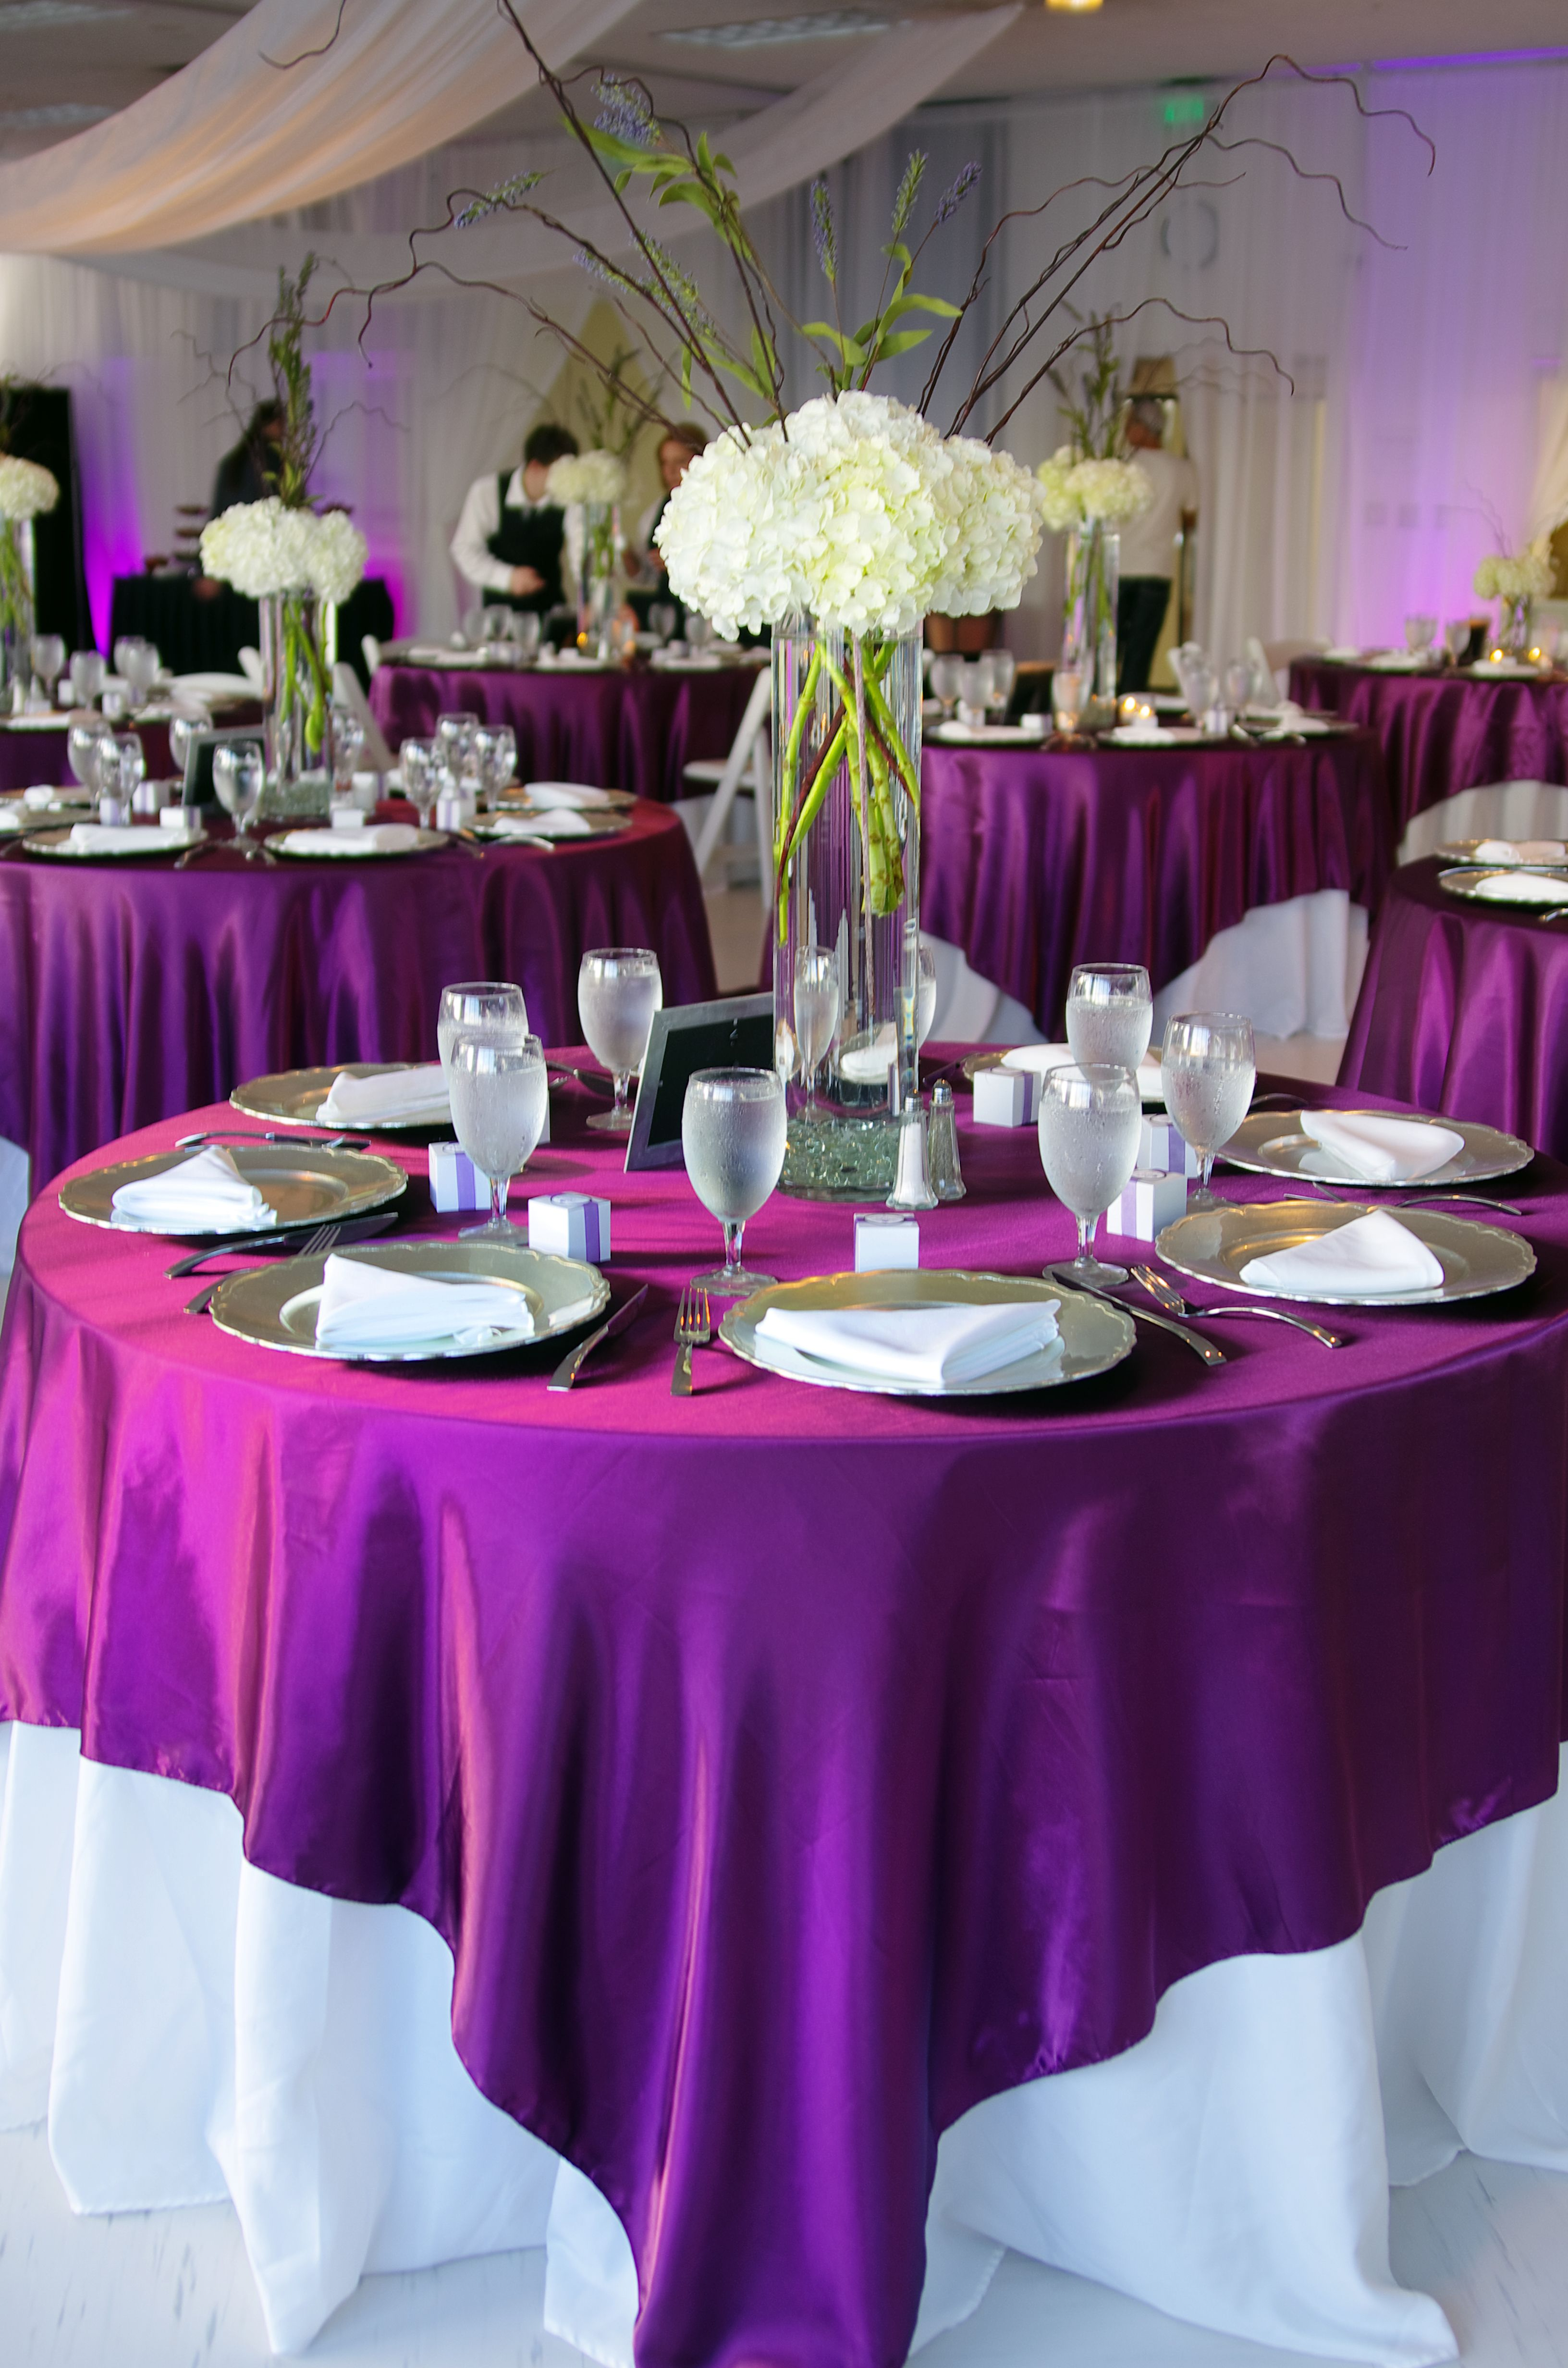 Superieur White Tablecloth With Purple Overlay, One Of My Options. Use Our Magenta  Violet Satin Overlays And White Tablecloths For This Gorgeous Look.  Www.cvlinens. ...